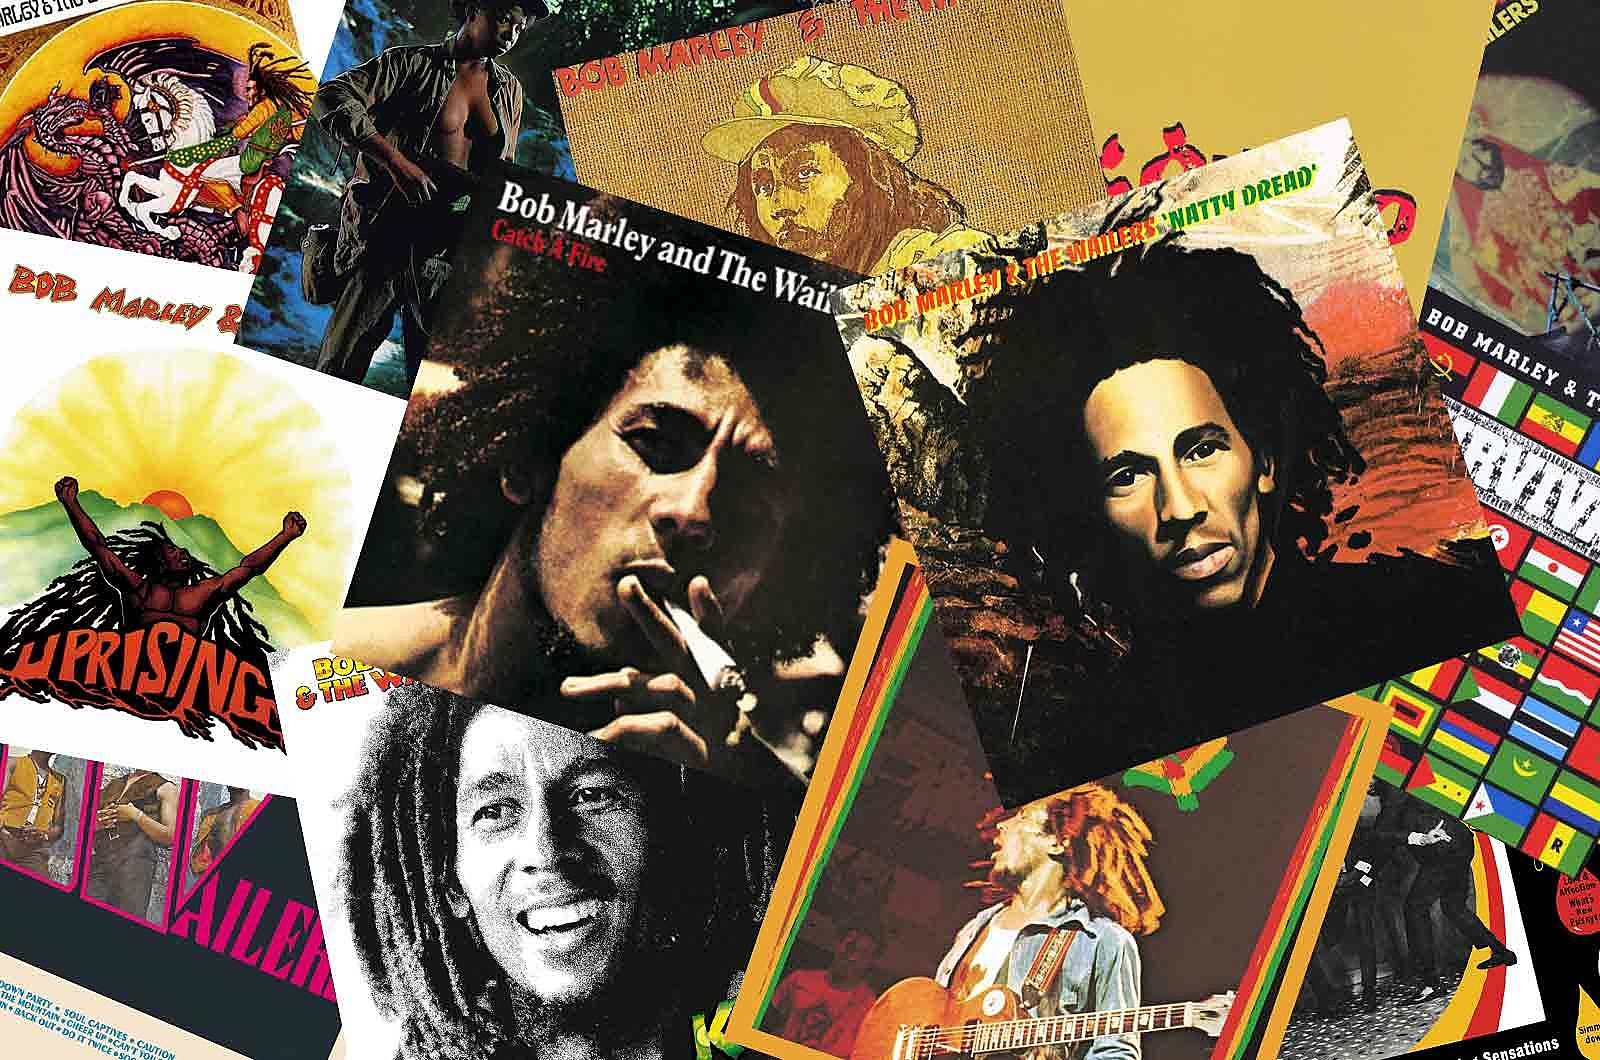 Bob Marley Albums Ranked Worst to Best 00a3f0c43